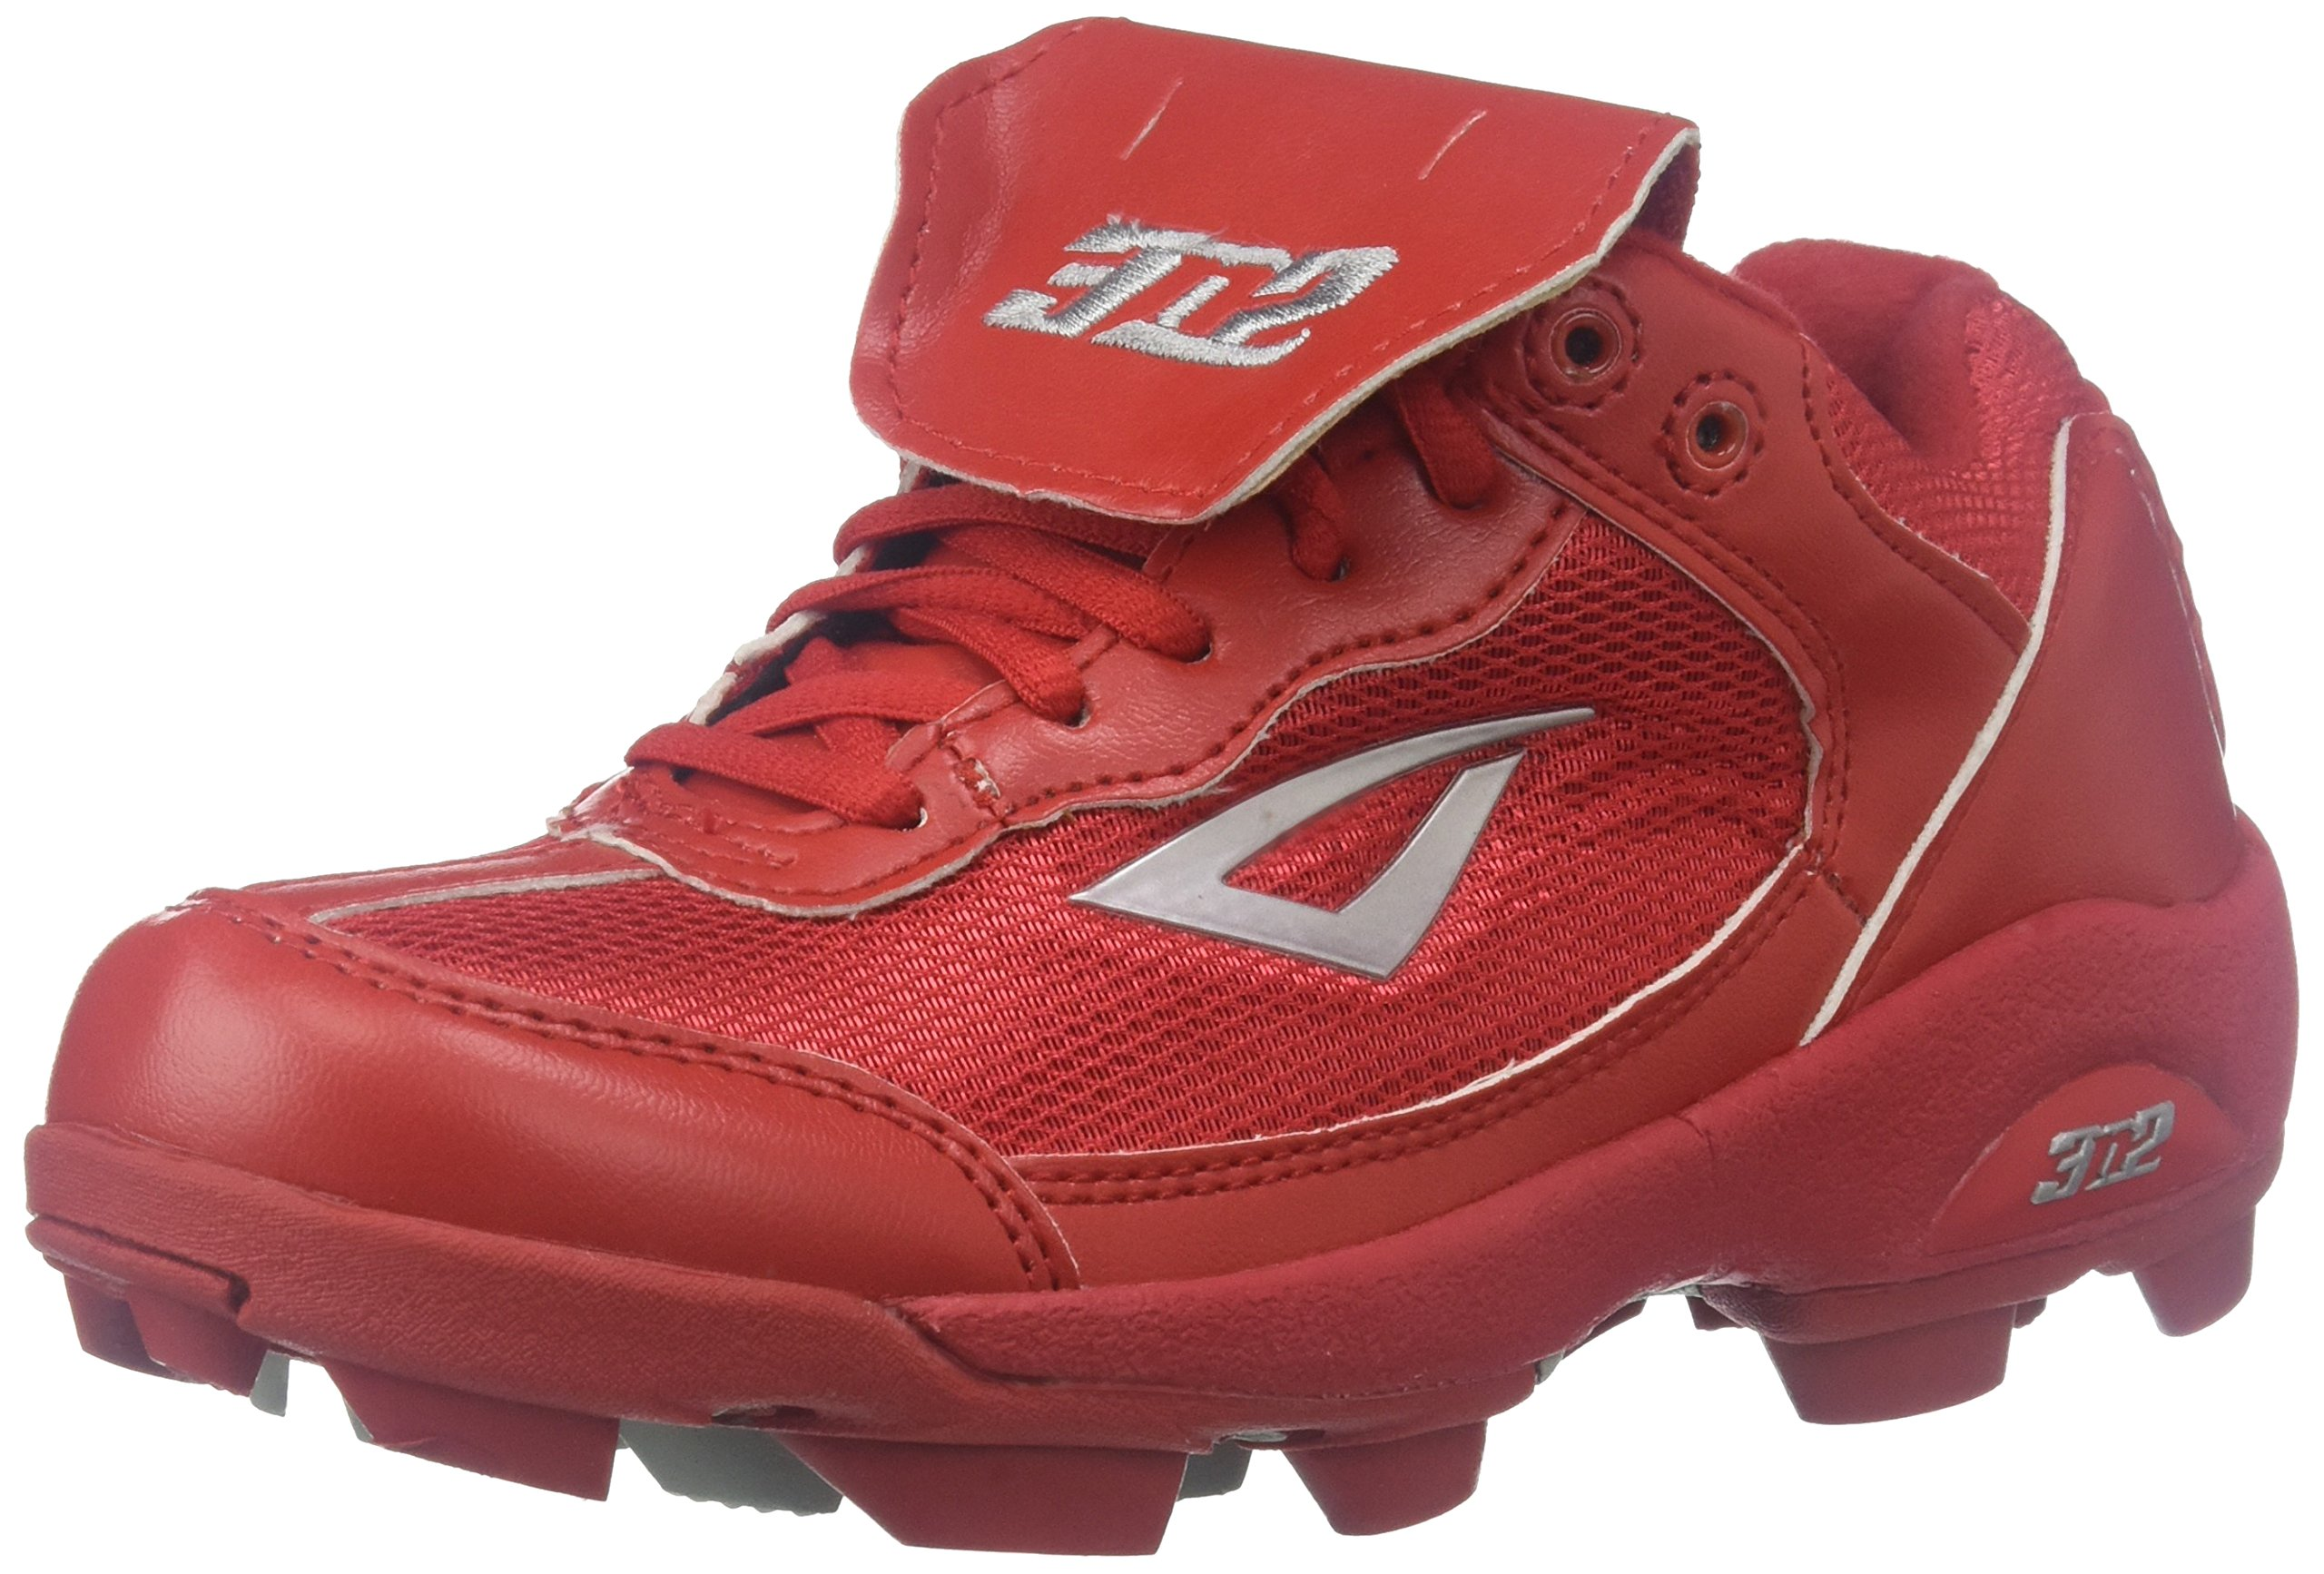 3N2 Youth Rookie Shoes, Red/Silver, Size 3.5 by 3N2